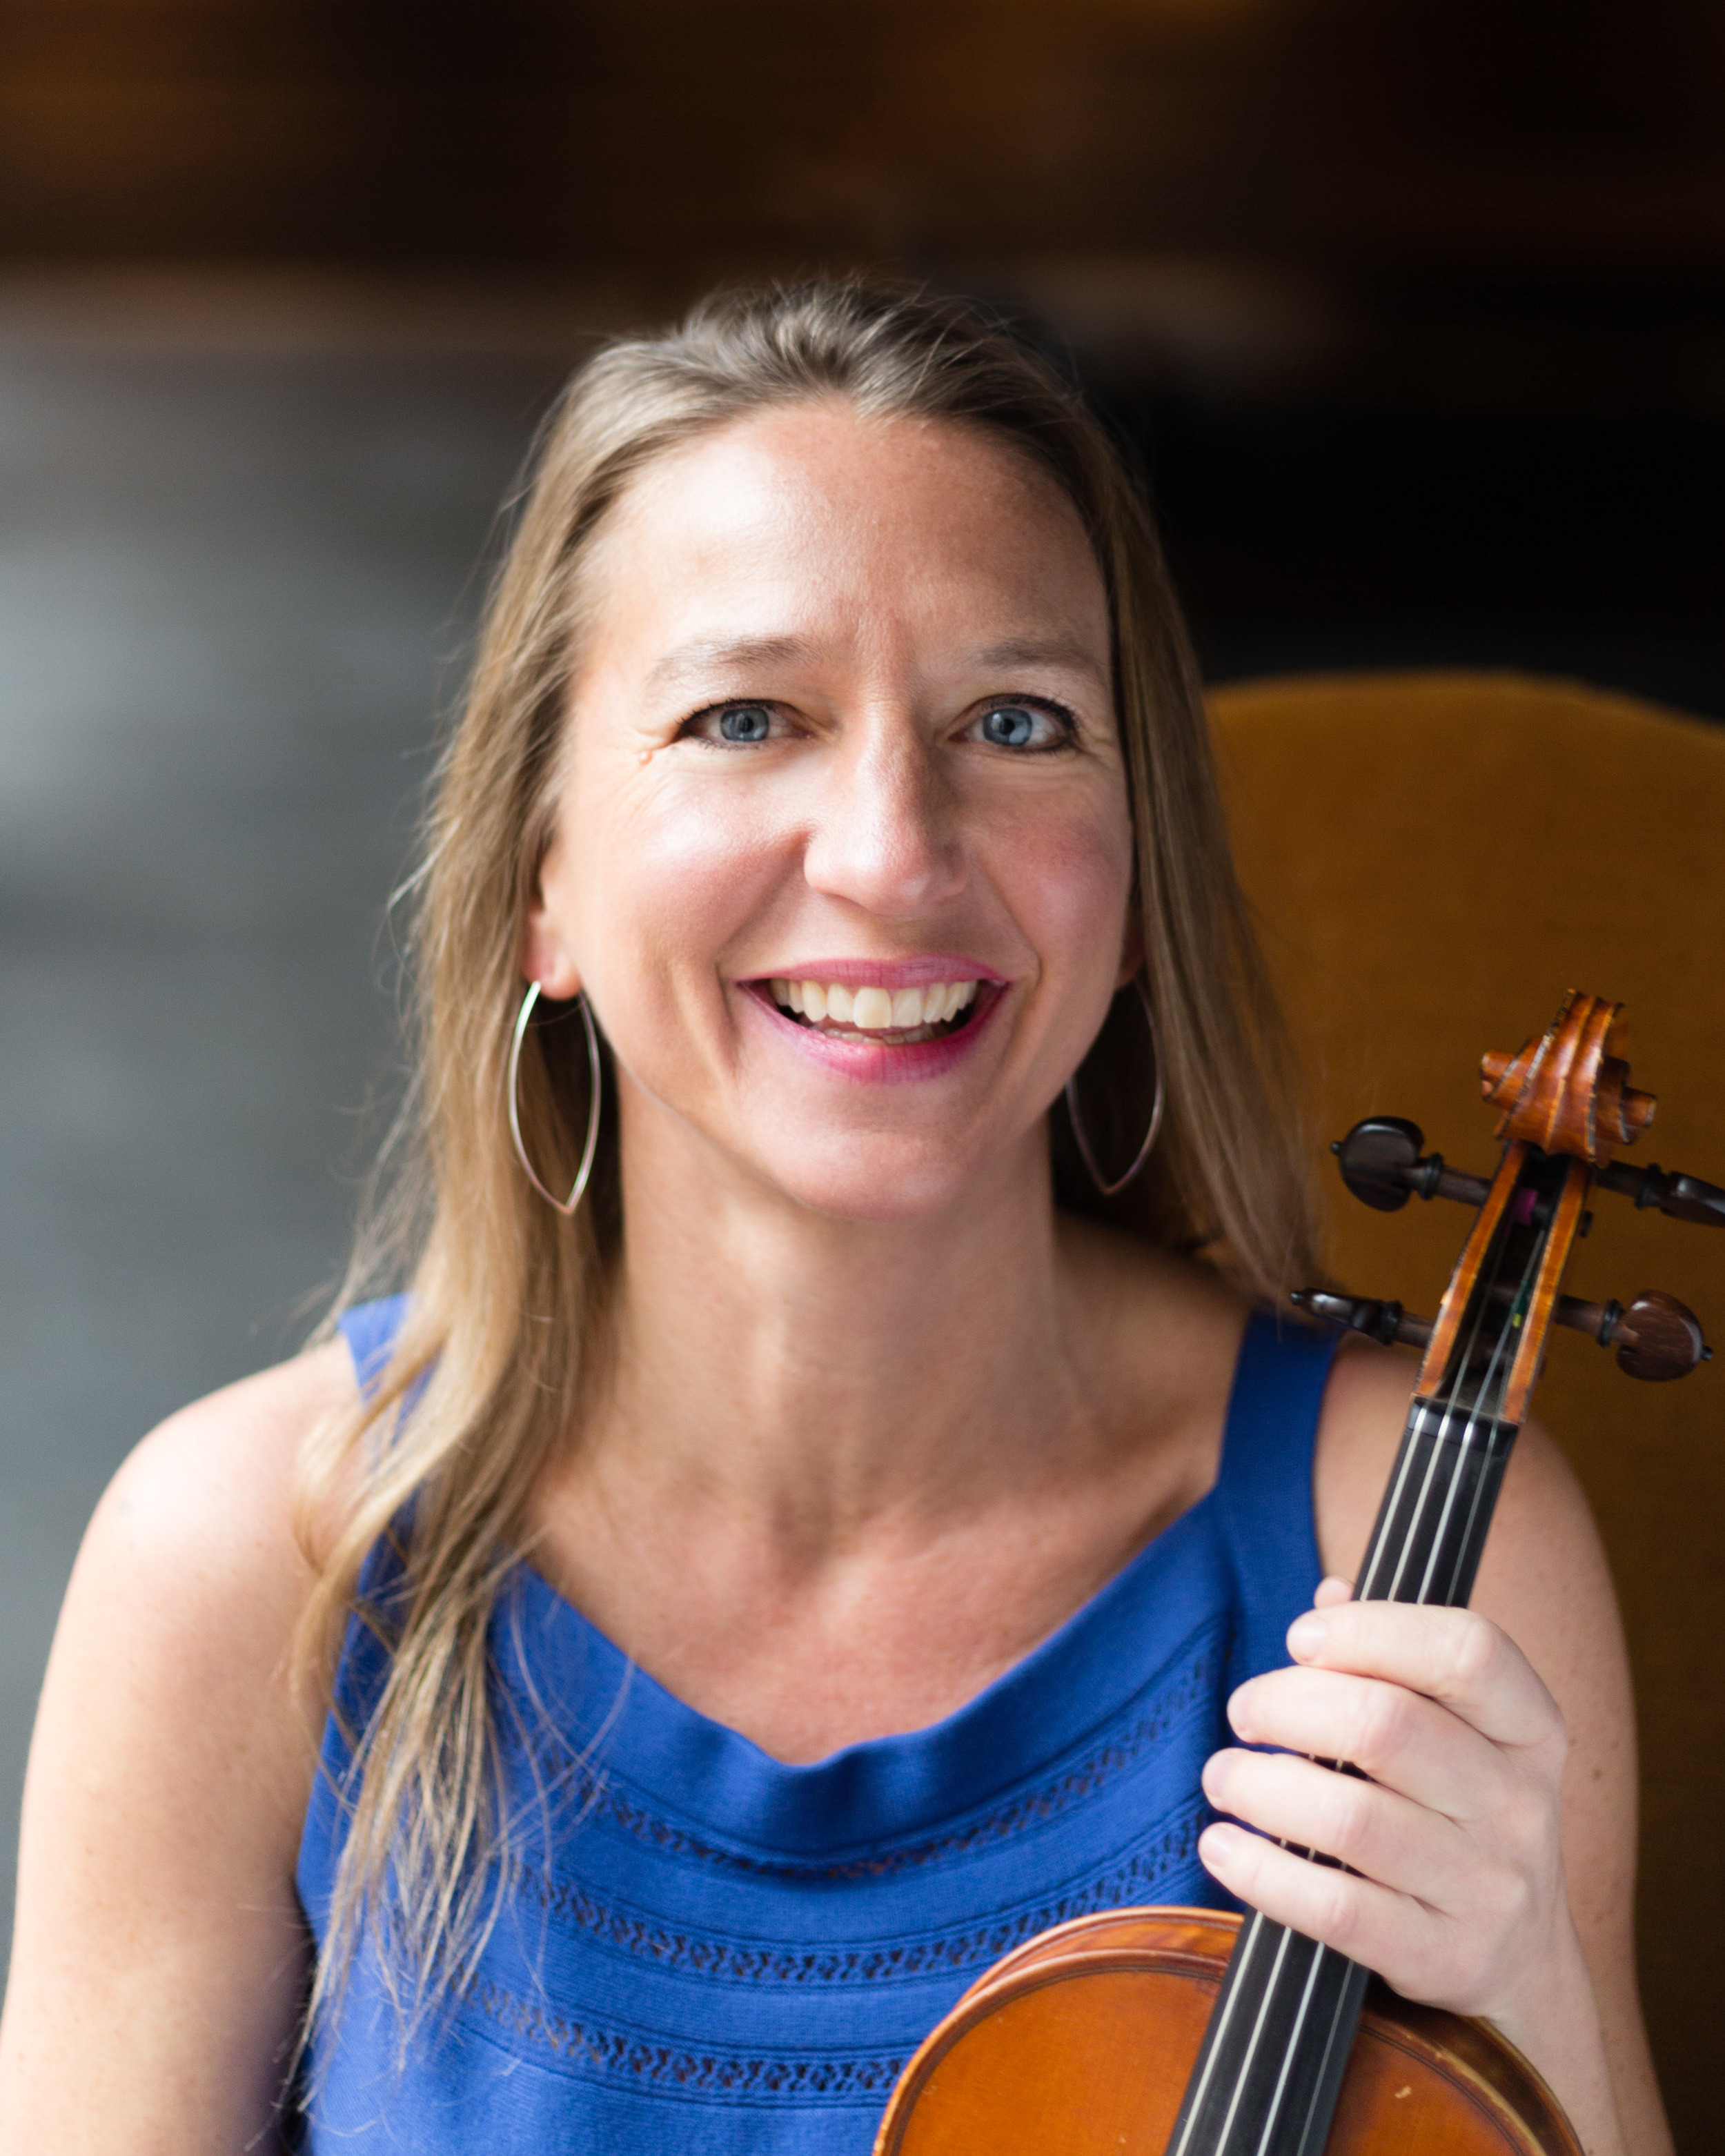 Inger Petersen Carle, Violinist  Carnegie Mellon University, Cleveland Institute of Music  What makes a great studio musician? Someone who gets it right on the first pass. That's Inger. And the magic she works in the studio translates to live performances too, when you only get one chance. With training like Inger's, she's in high demand, performing with the likes of Lake Forest Symphony, Elgin Symphony Orchestra, and the City Lights Orchestra – and nationally with the Sarasota Opera and the Key West Symphony Orchestra. You might also catch her with the Becca Kaufman Orchestra or the CoverGirls Violin Show. Don't forget to listen at your next theater outing; Inger's recorded the soundtracks for Chicago Shakespeare Theater, Goodman Theatre, and American Players Theatre. Plus, she's a first-call when touring musicians come through town, performing with Rod Stewart, Ray LaMontagne, Belle and Sebastian, Kishi Bashi, Sufjan Stevens, Poi Dog Pondering, Michael Bublé, Josh Grobin, the Pointer Sisters, Dennis DeYoung, Natalie Cole, Frank Sinatra Jr. and Brian Wilson – to name a  few .  Her teachers have included Donald Weilerstein, Andrés Cárdenes and David Updegraf.